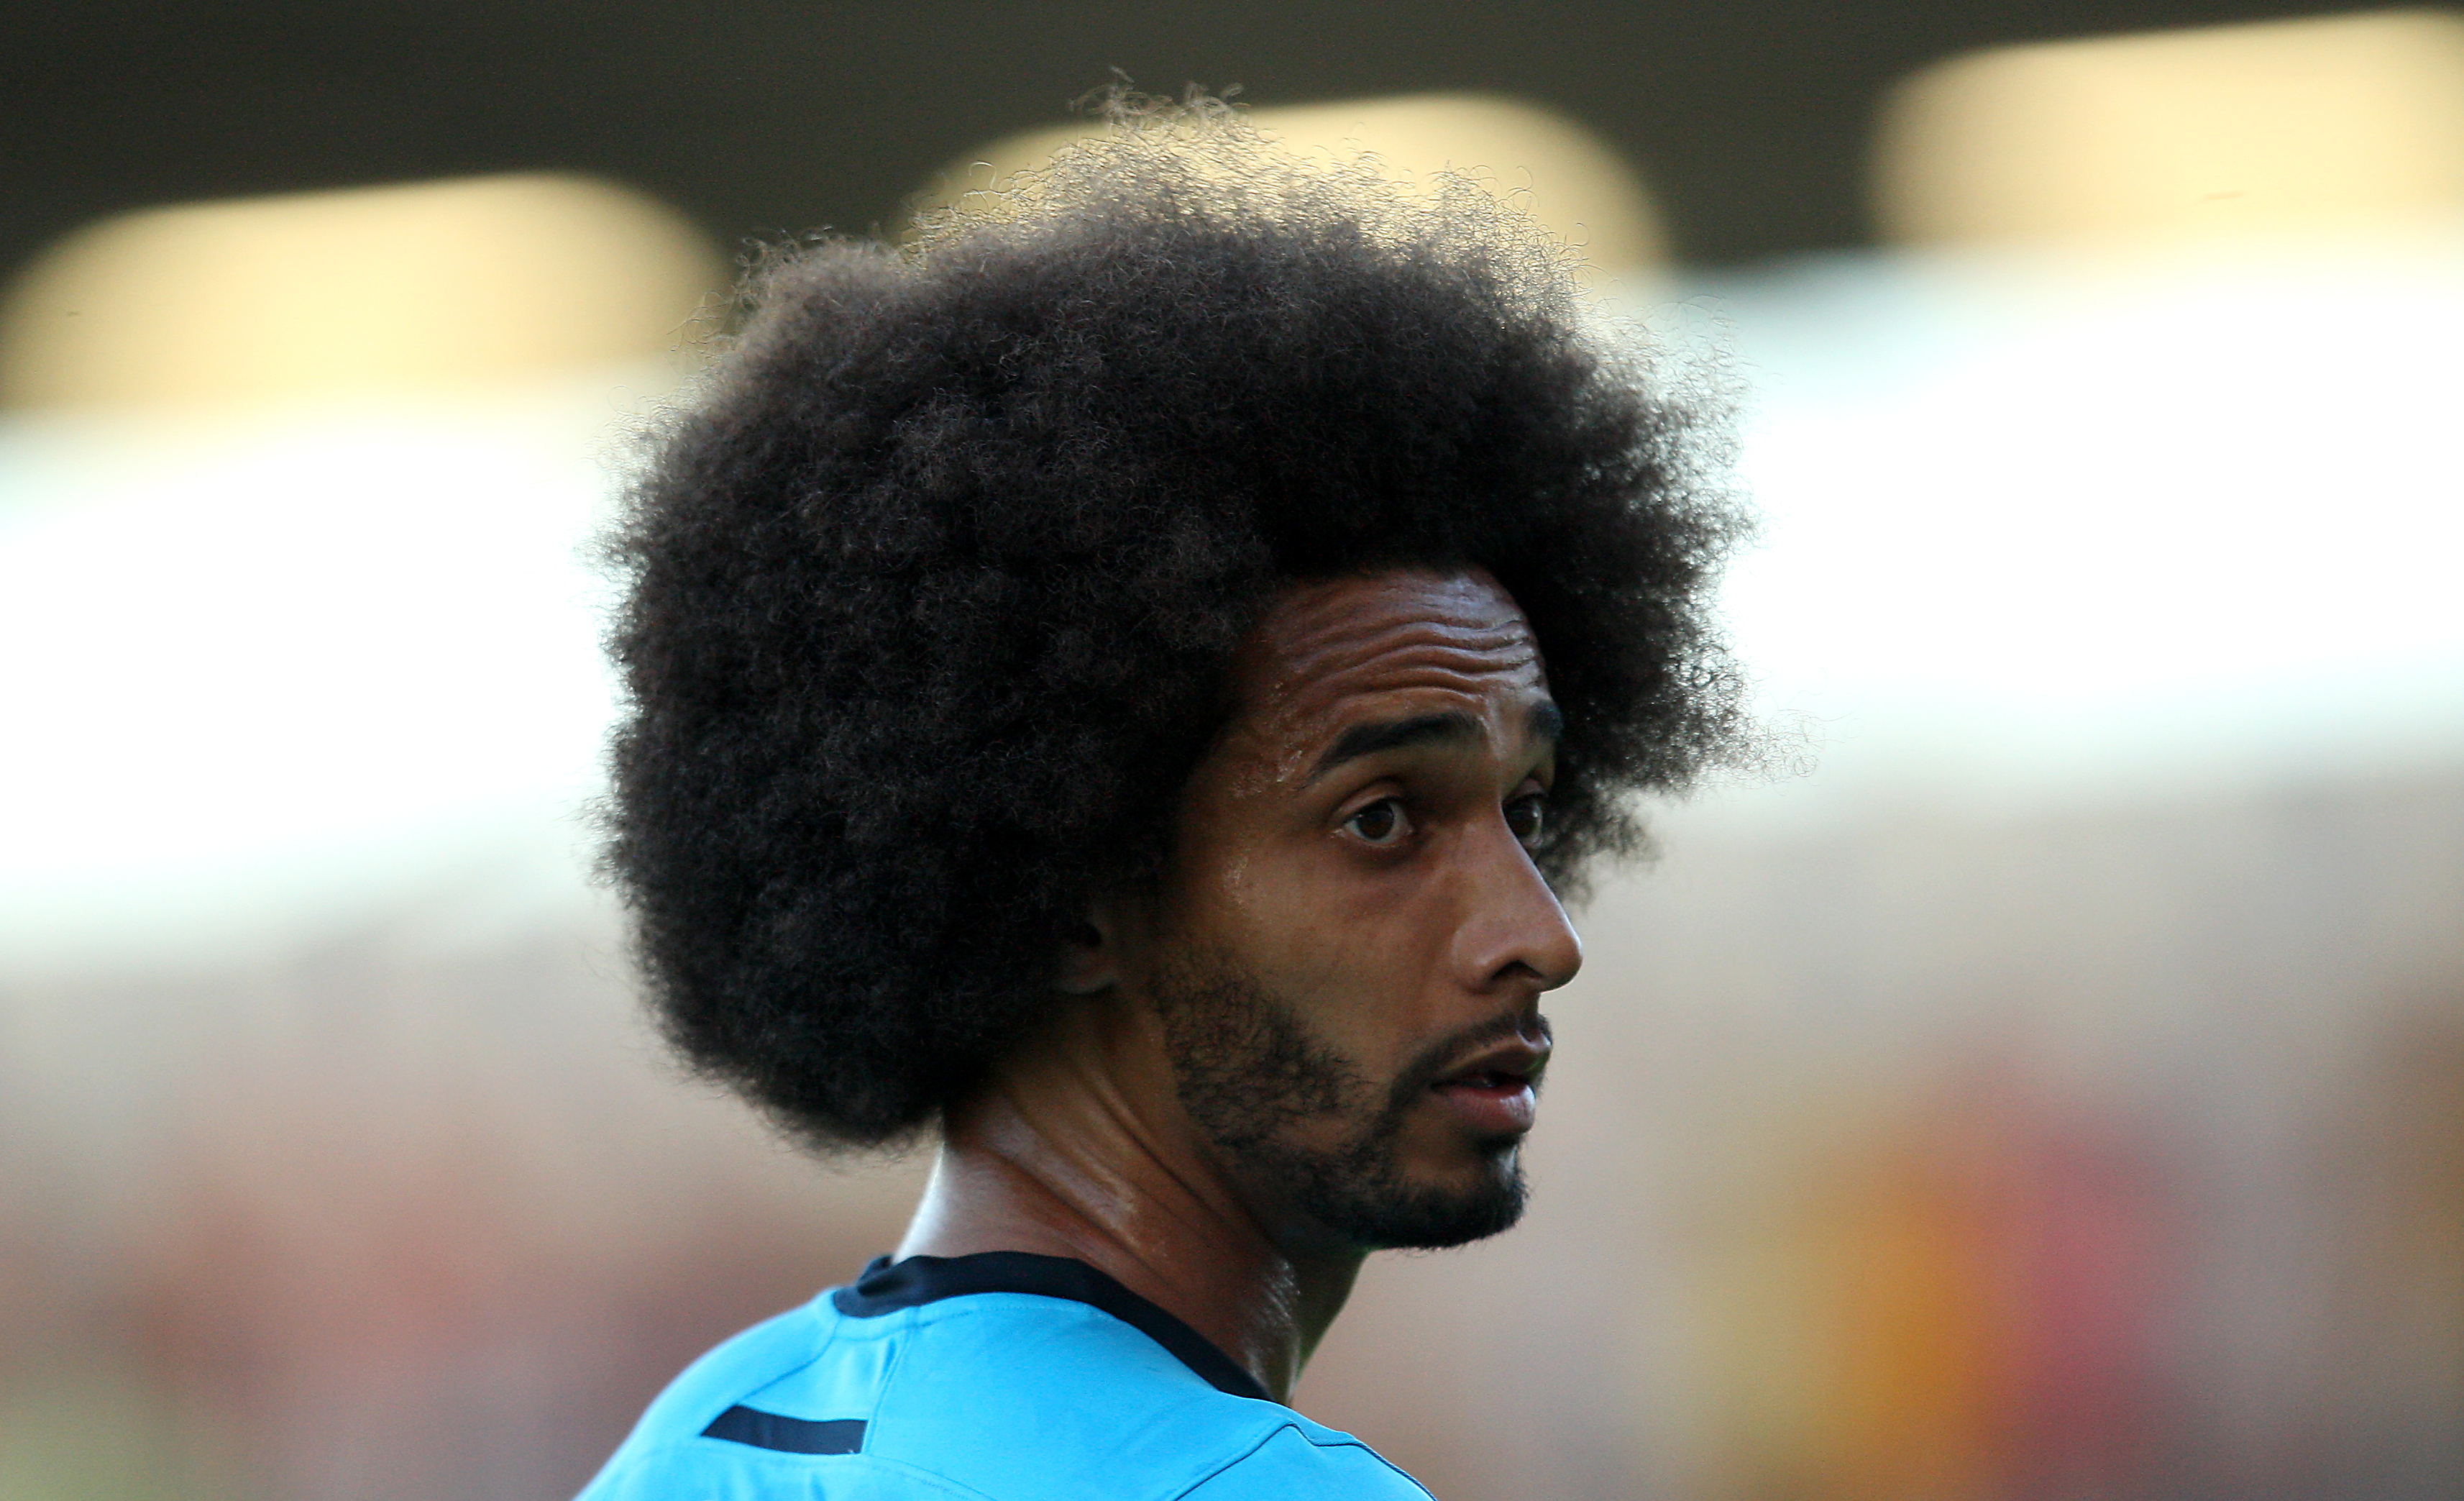 Harry Redknapp wants to sign Benoit Assou-Ekotto but the defender is more interested in becoming a pornstar